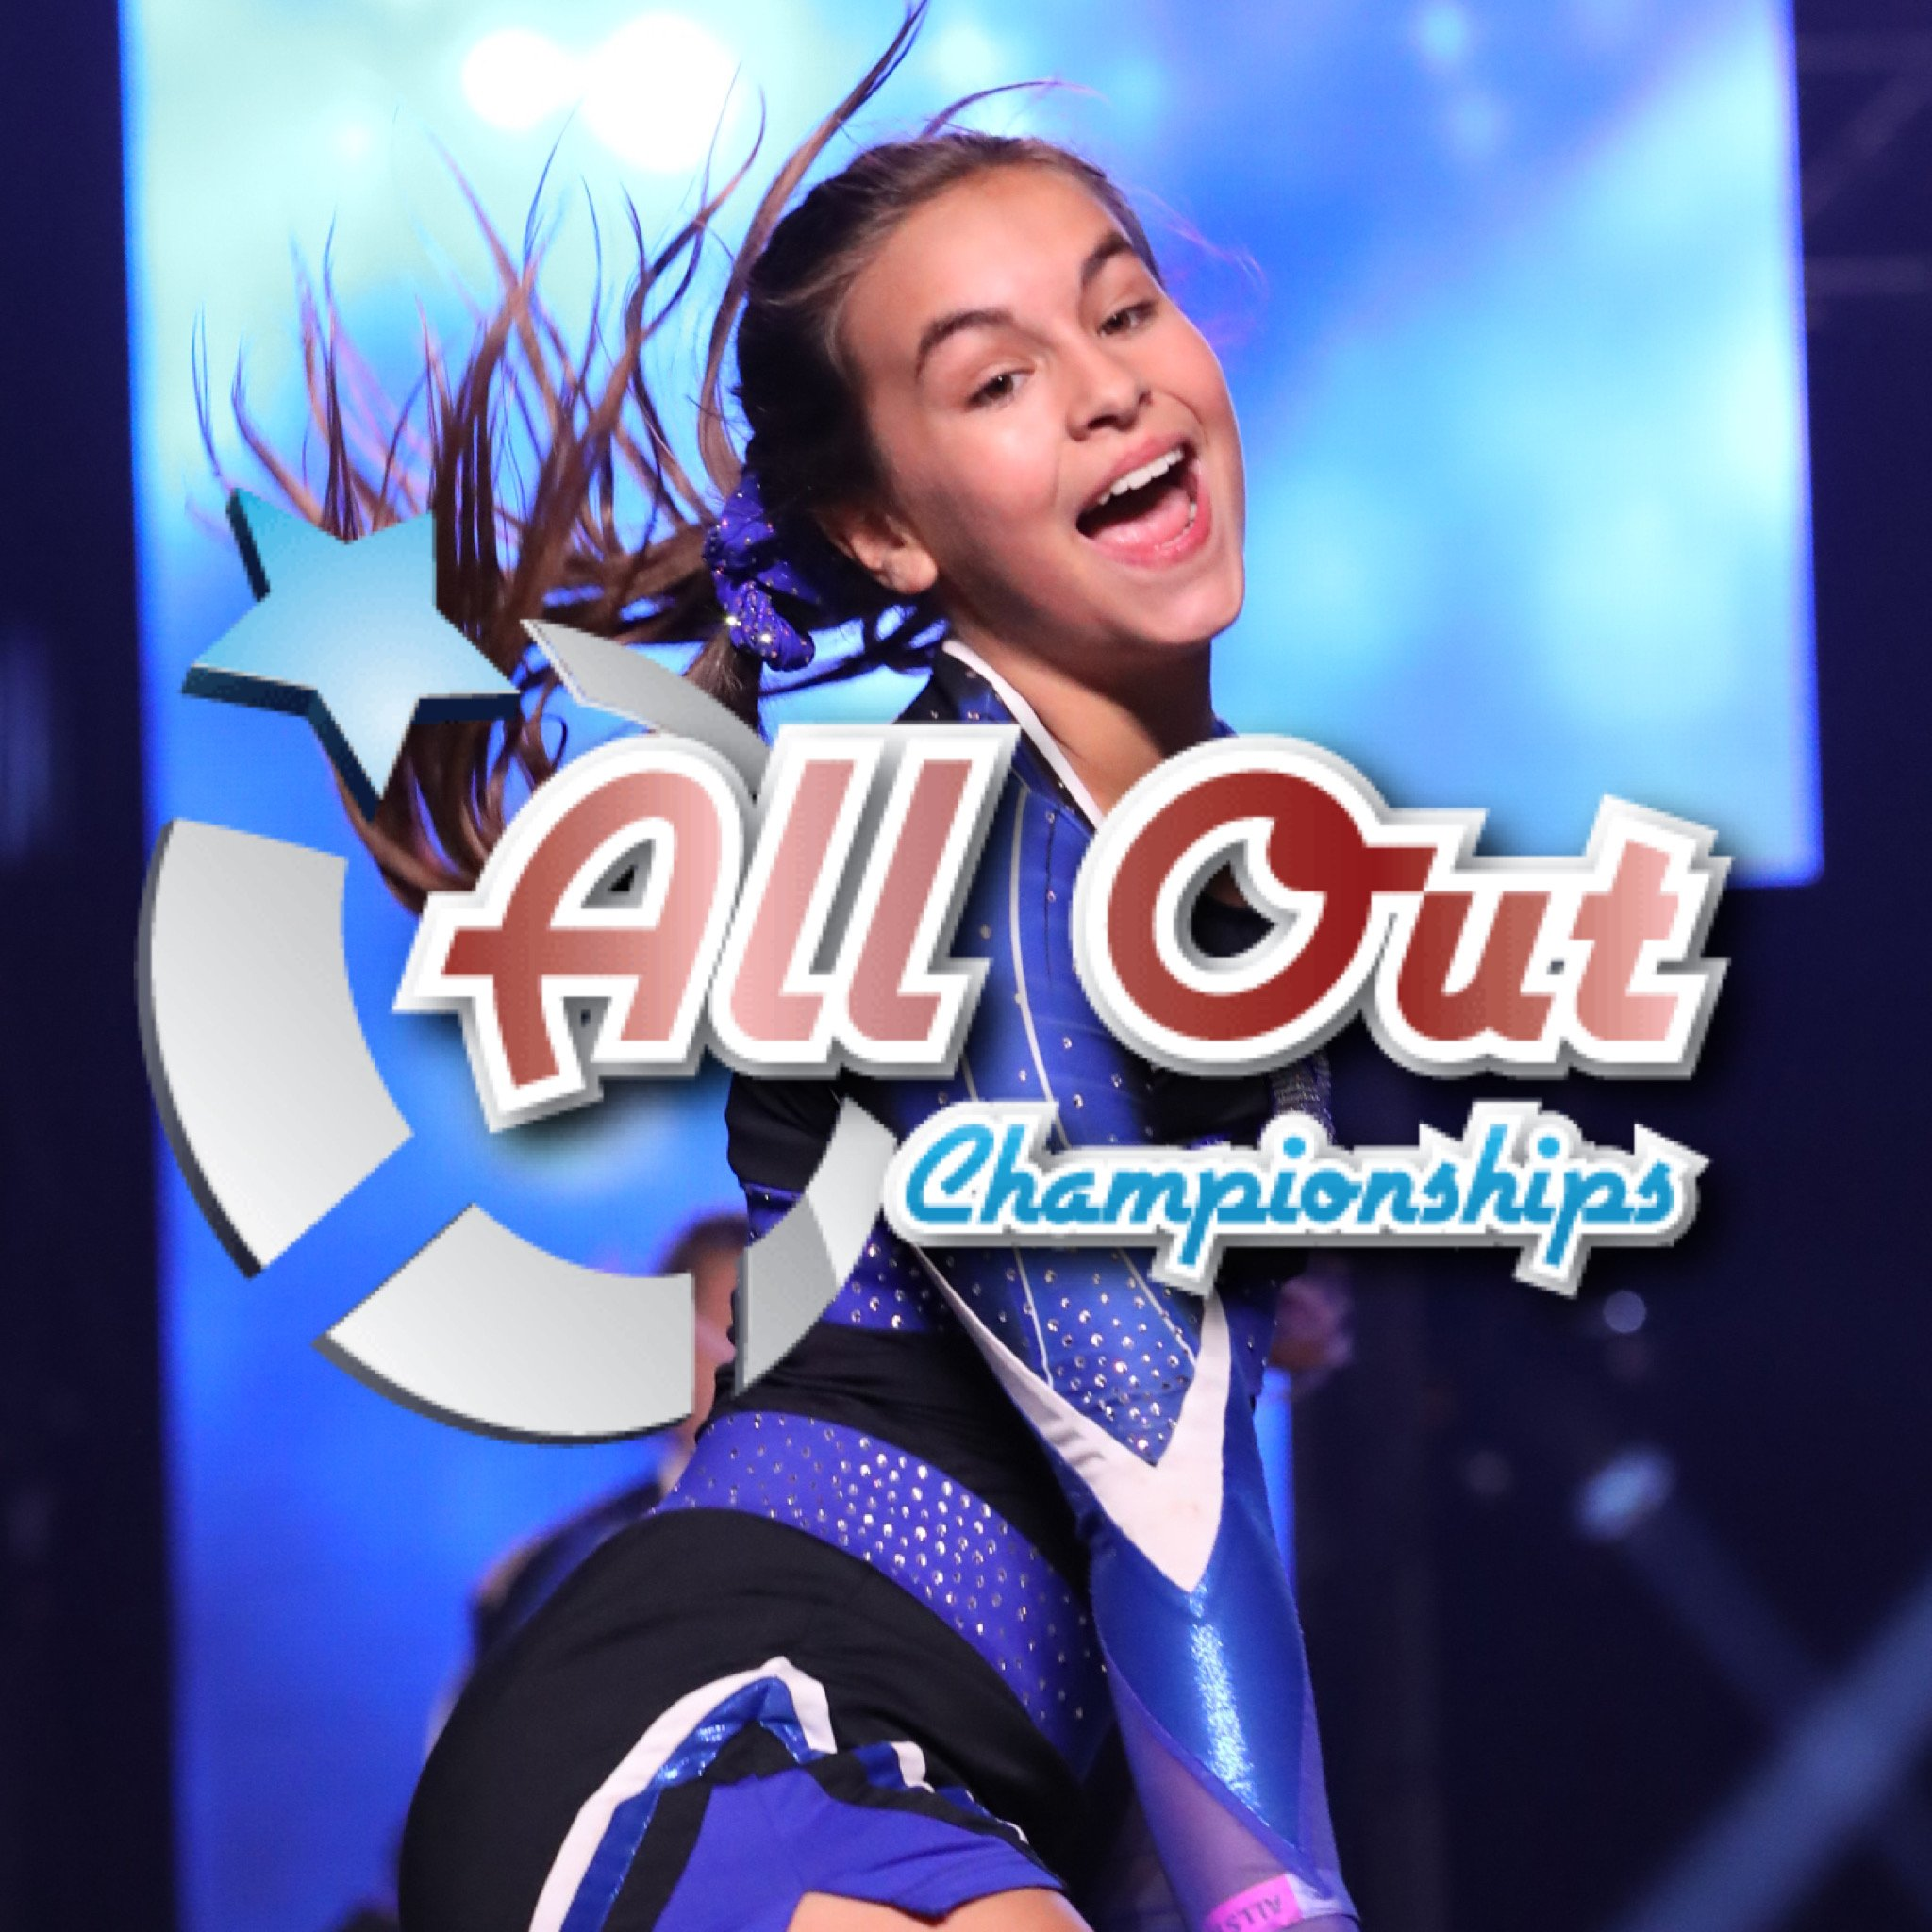 All Out Championships